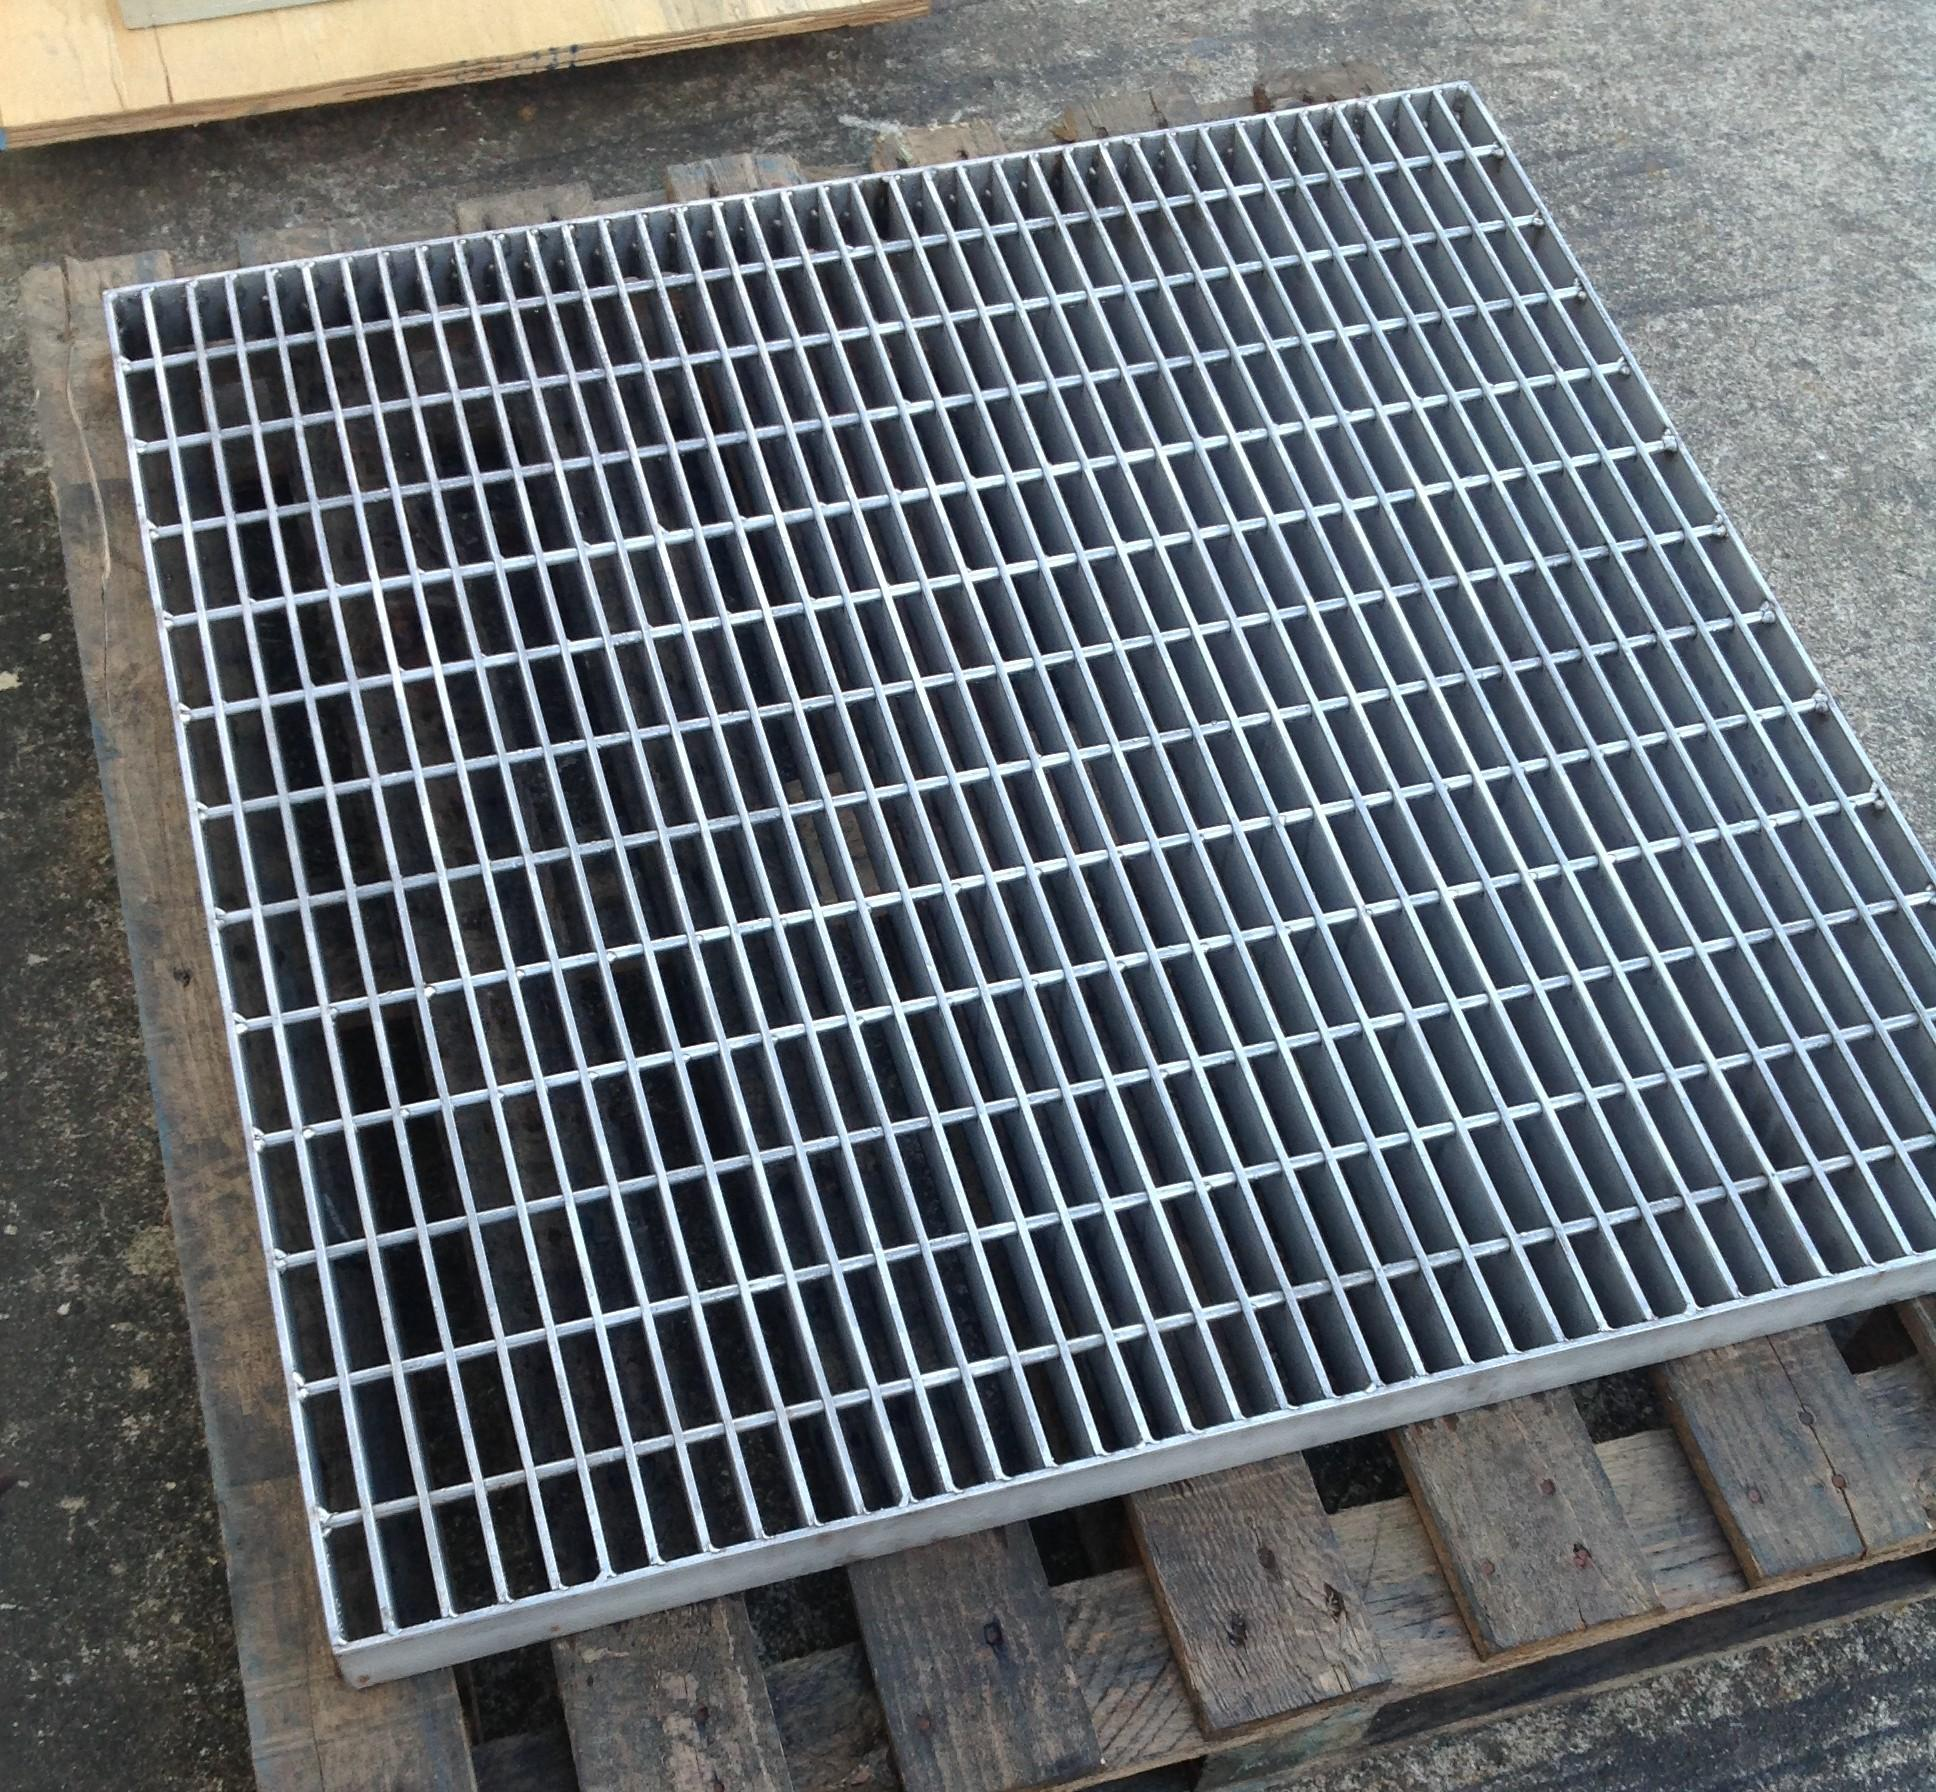 Patent products leaders in design for grates sumps